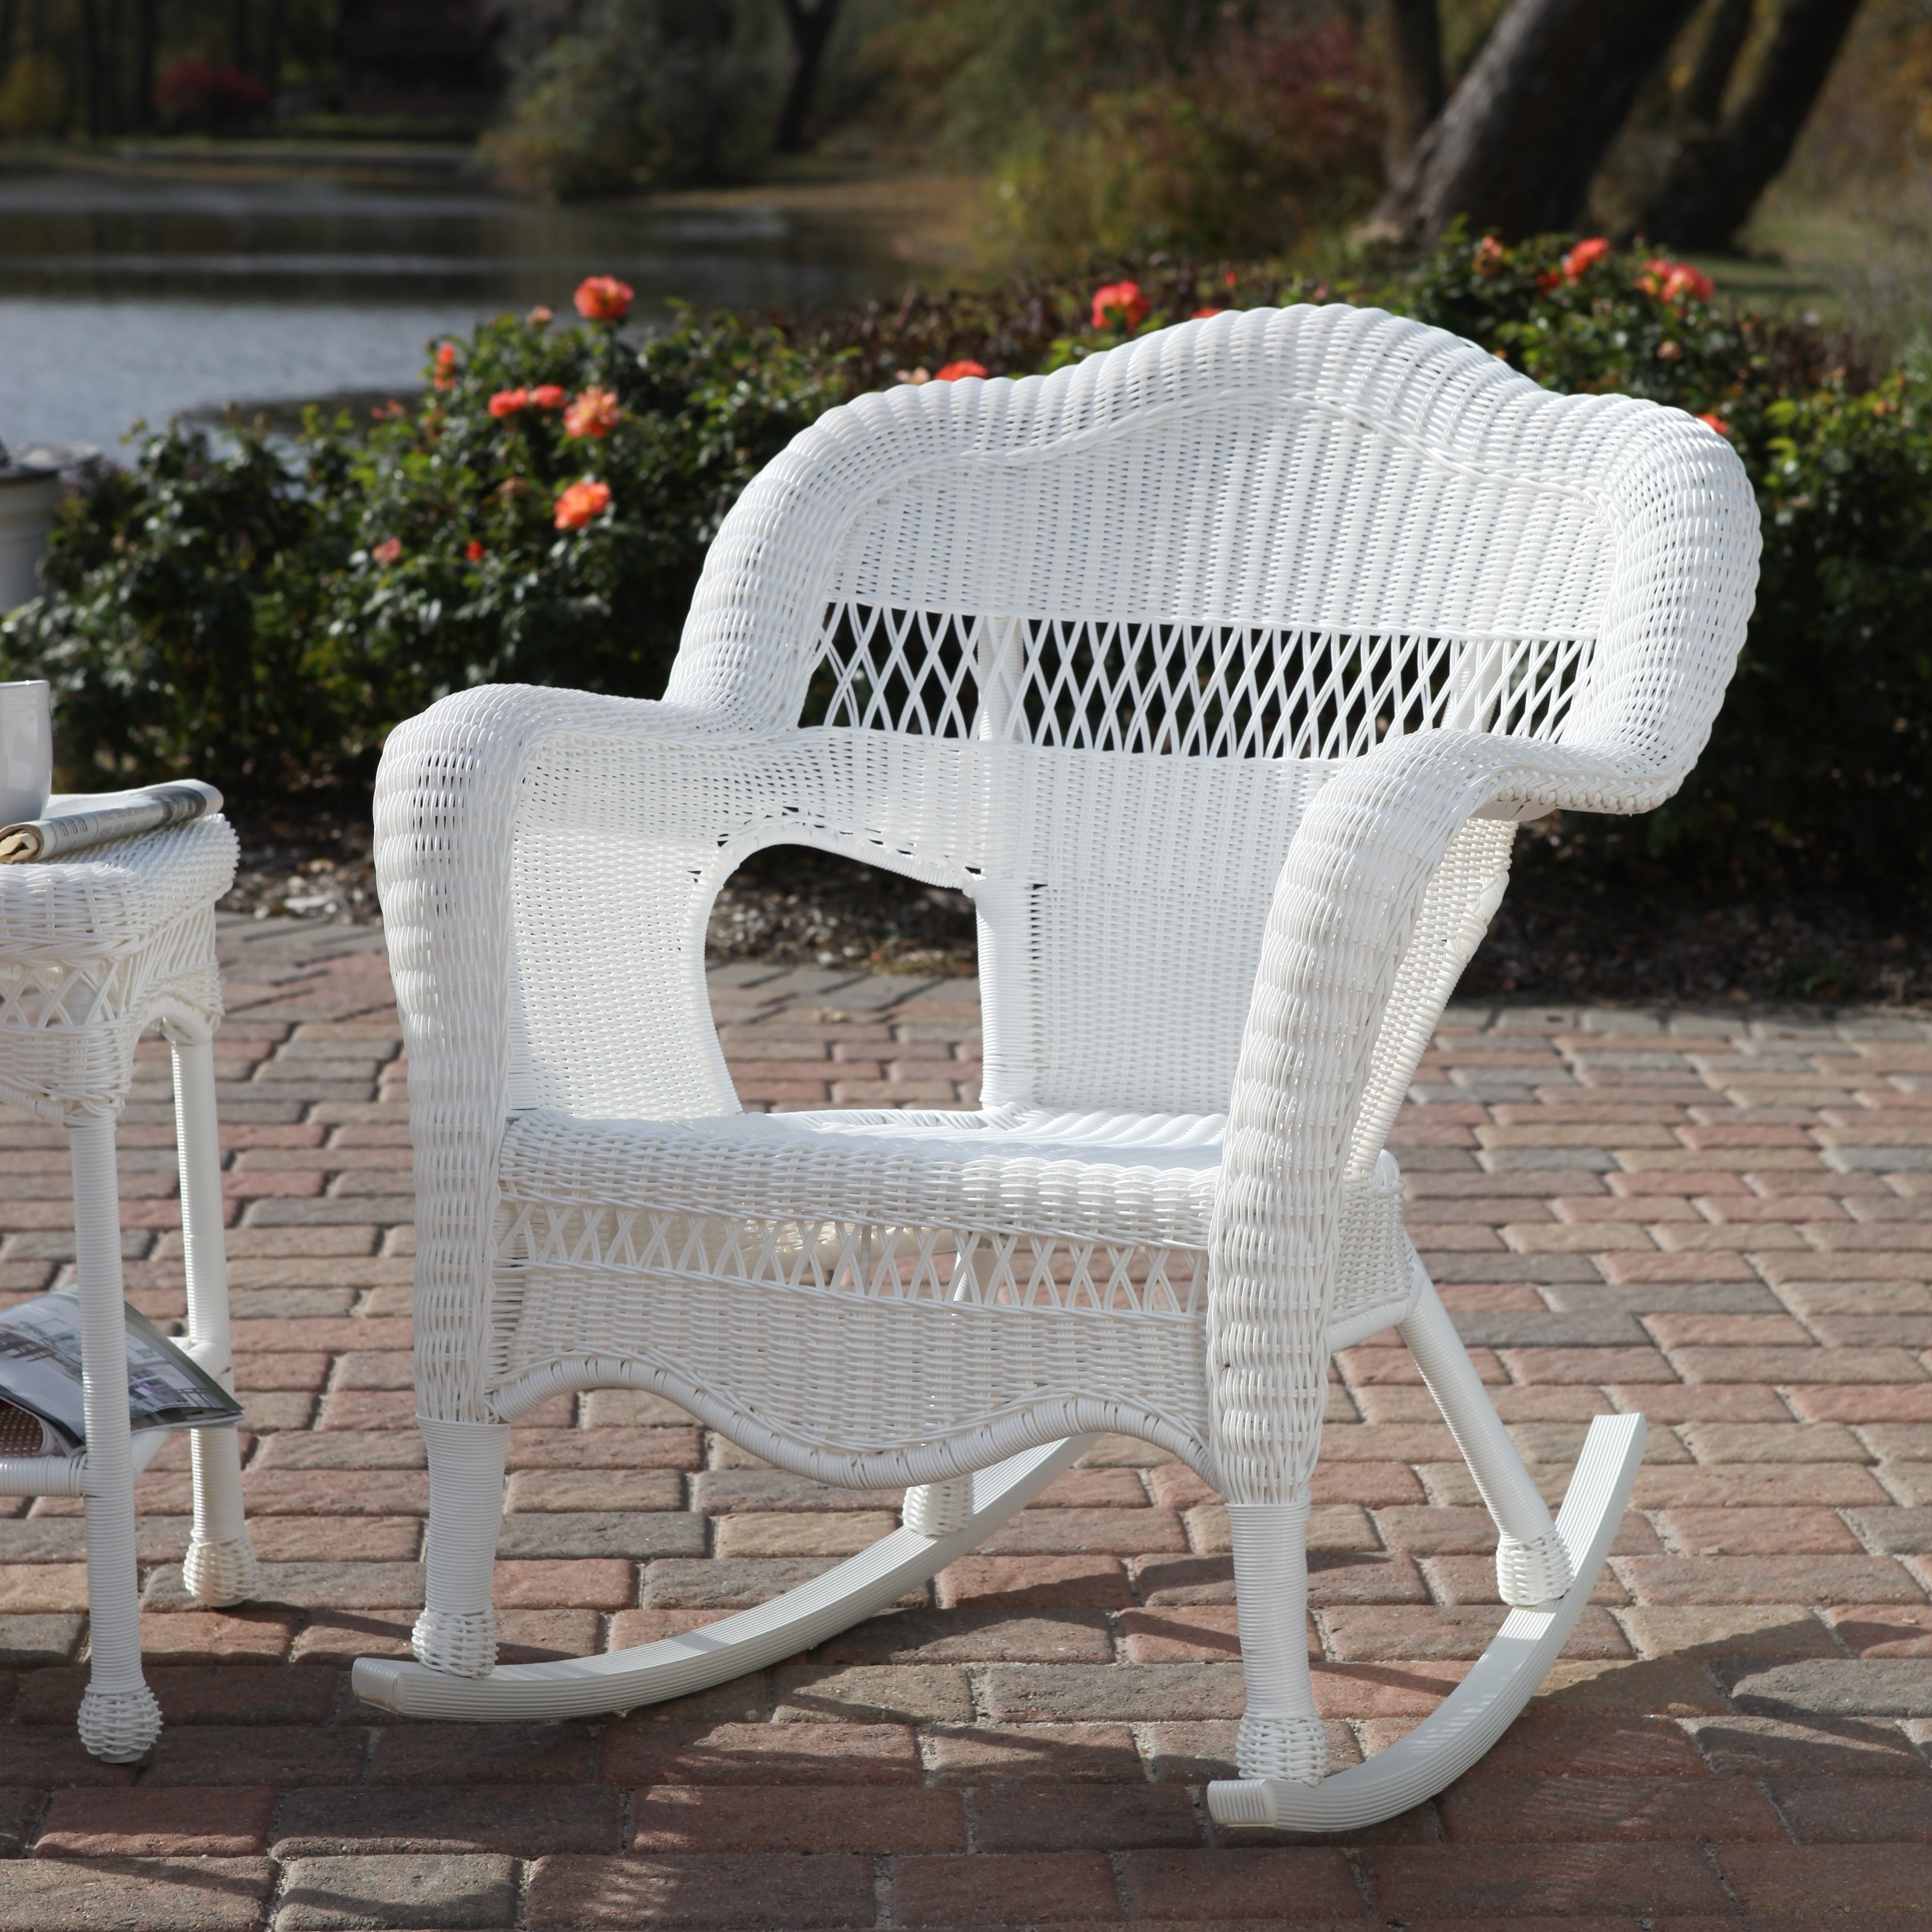 Newest Painting White Wicker Chairs — The Home Redesign With Regard To White Wicker Rocking Chair For Nursery (View 19 of 20)